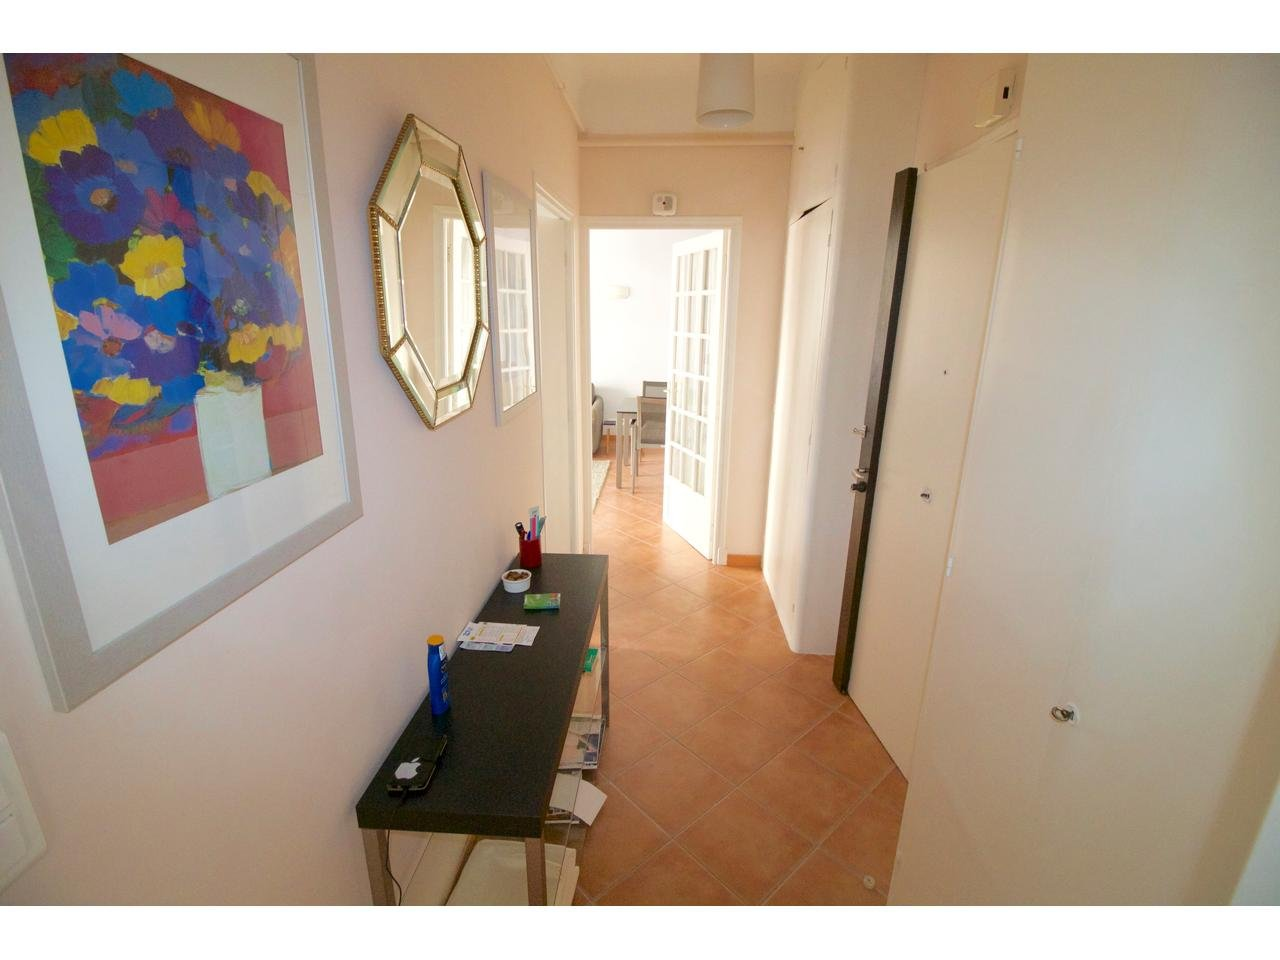 Appartement  2 Rooms 51.38m2  for sale   285 000 €